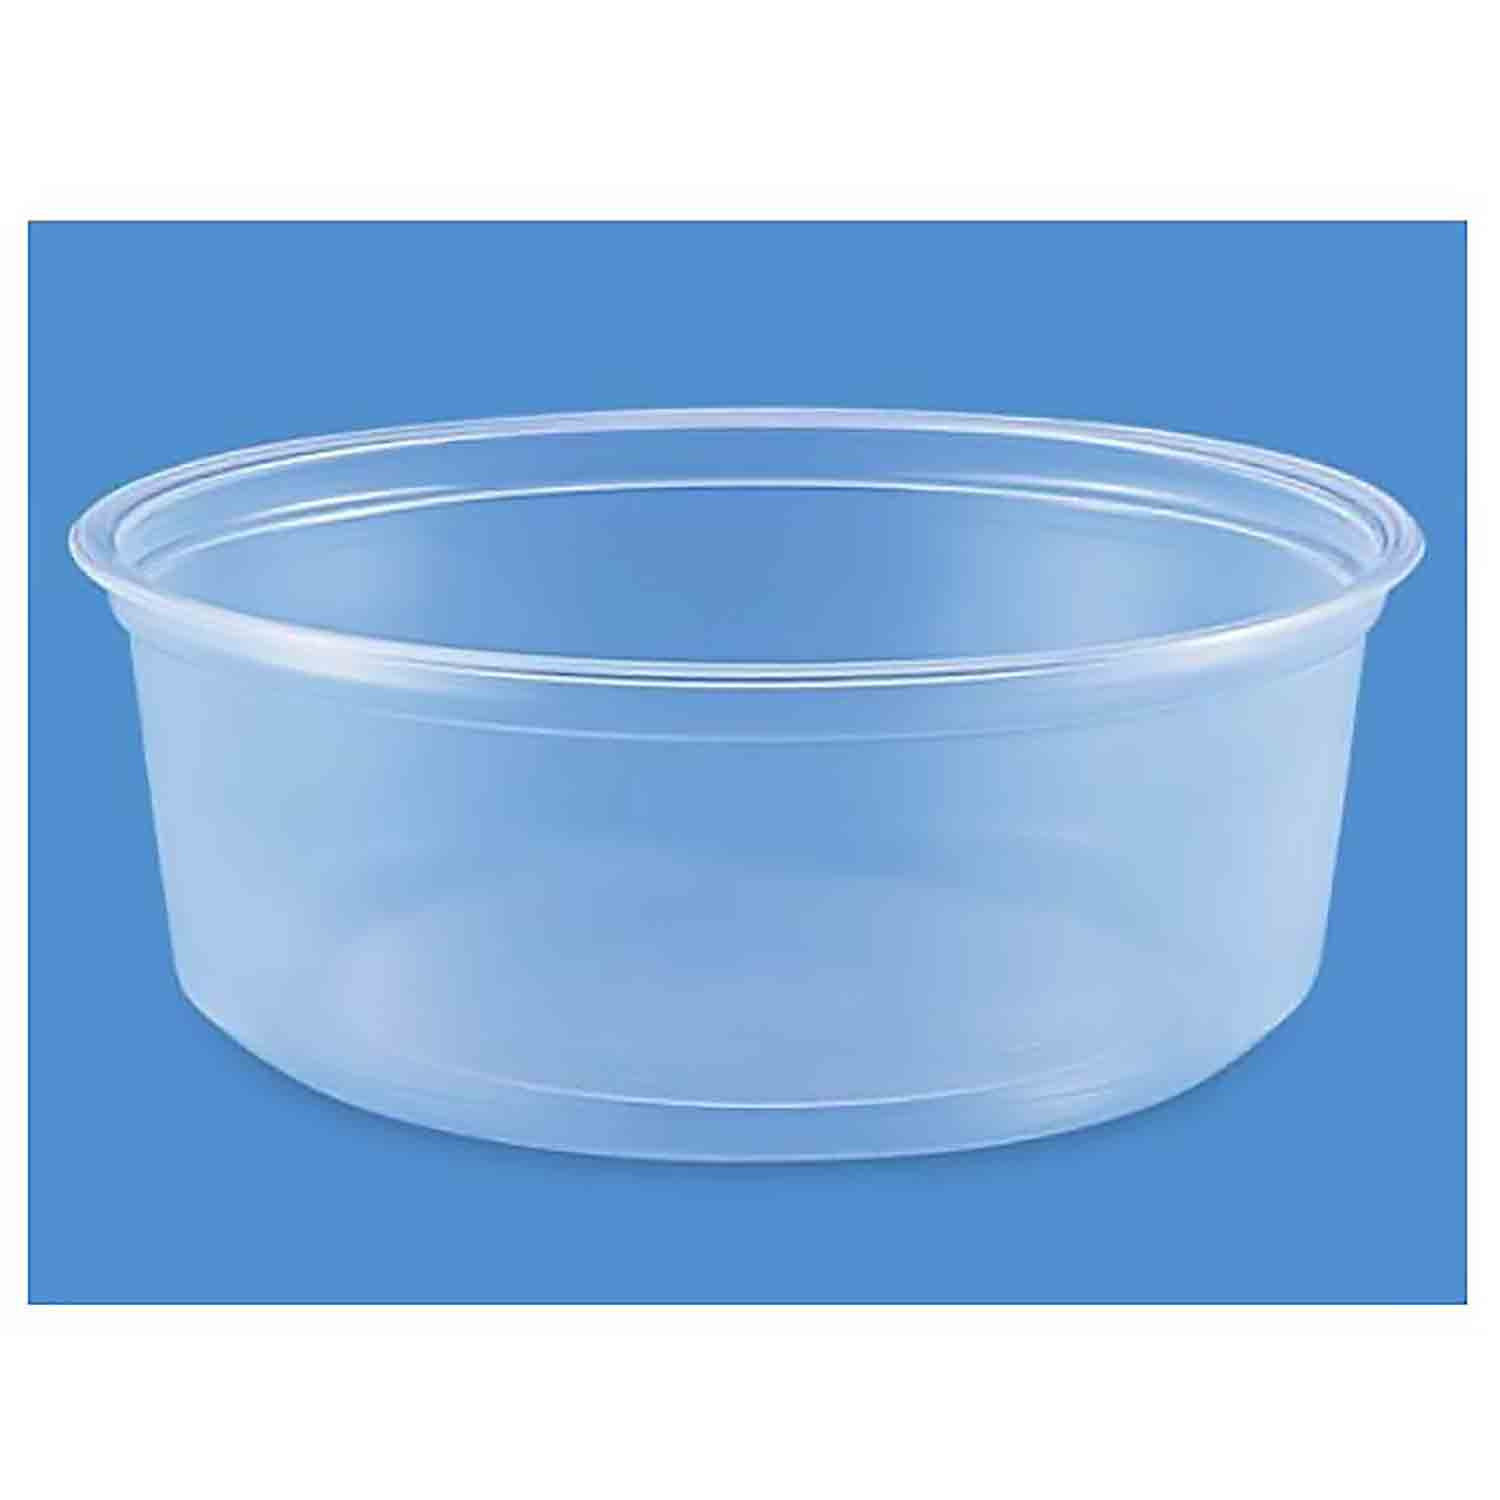 8 oz. Deli Container with Lid